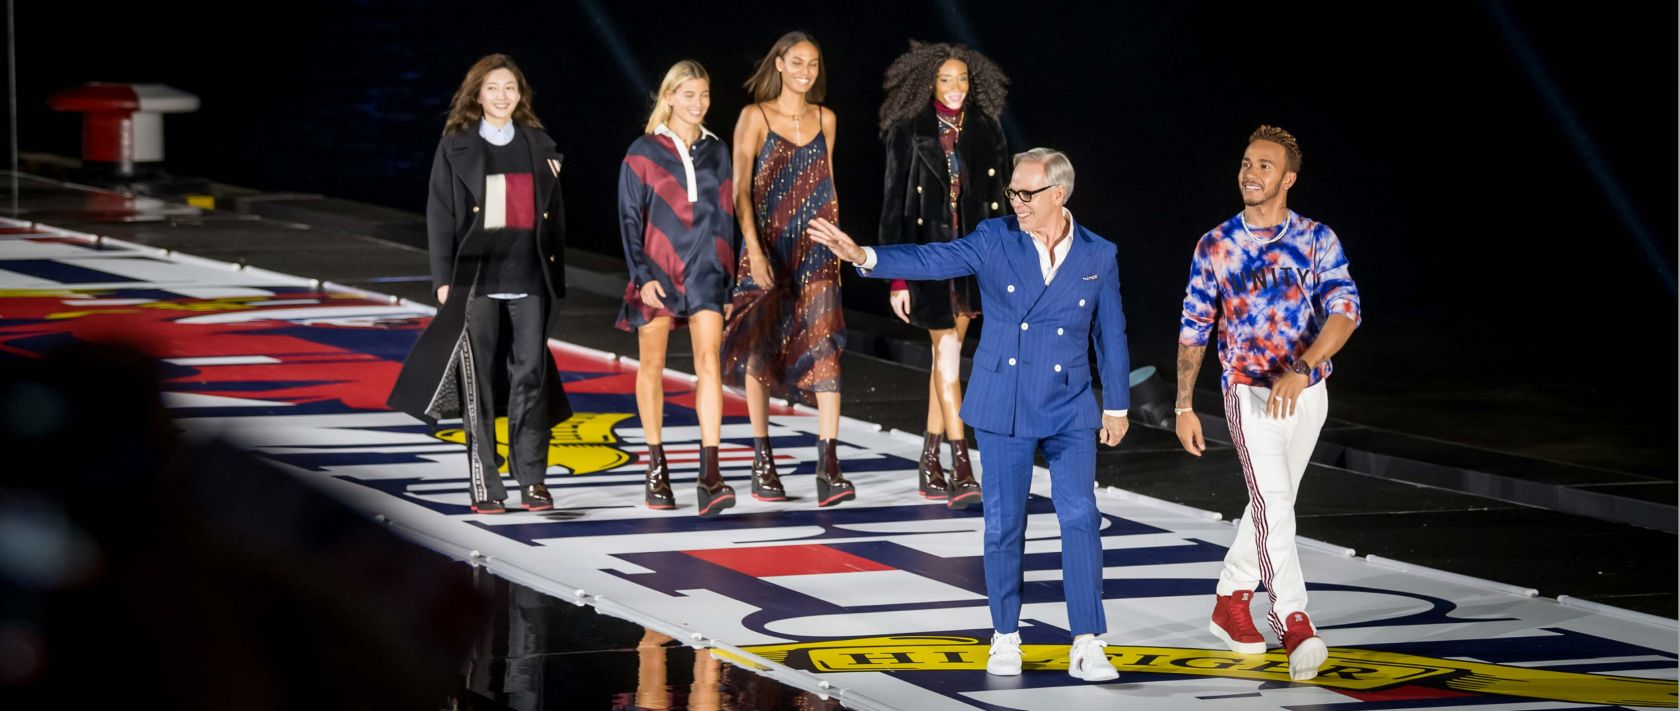 In September 2018, at the historic waterfront area The Bund, TommyXLewis premiered in Shanghai with a colossal show. Tommy Hilfiger and Lewis Hamilton personally presented their first collection.